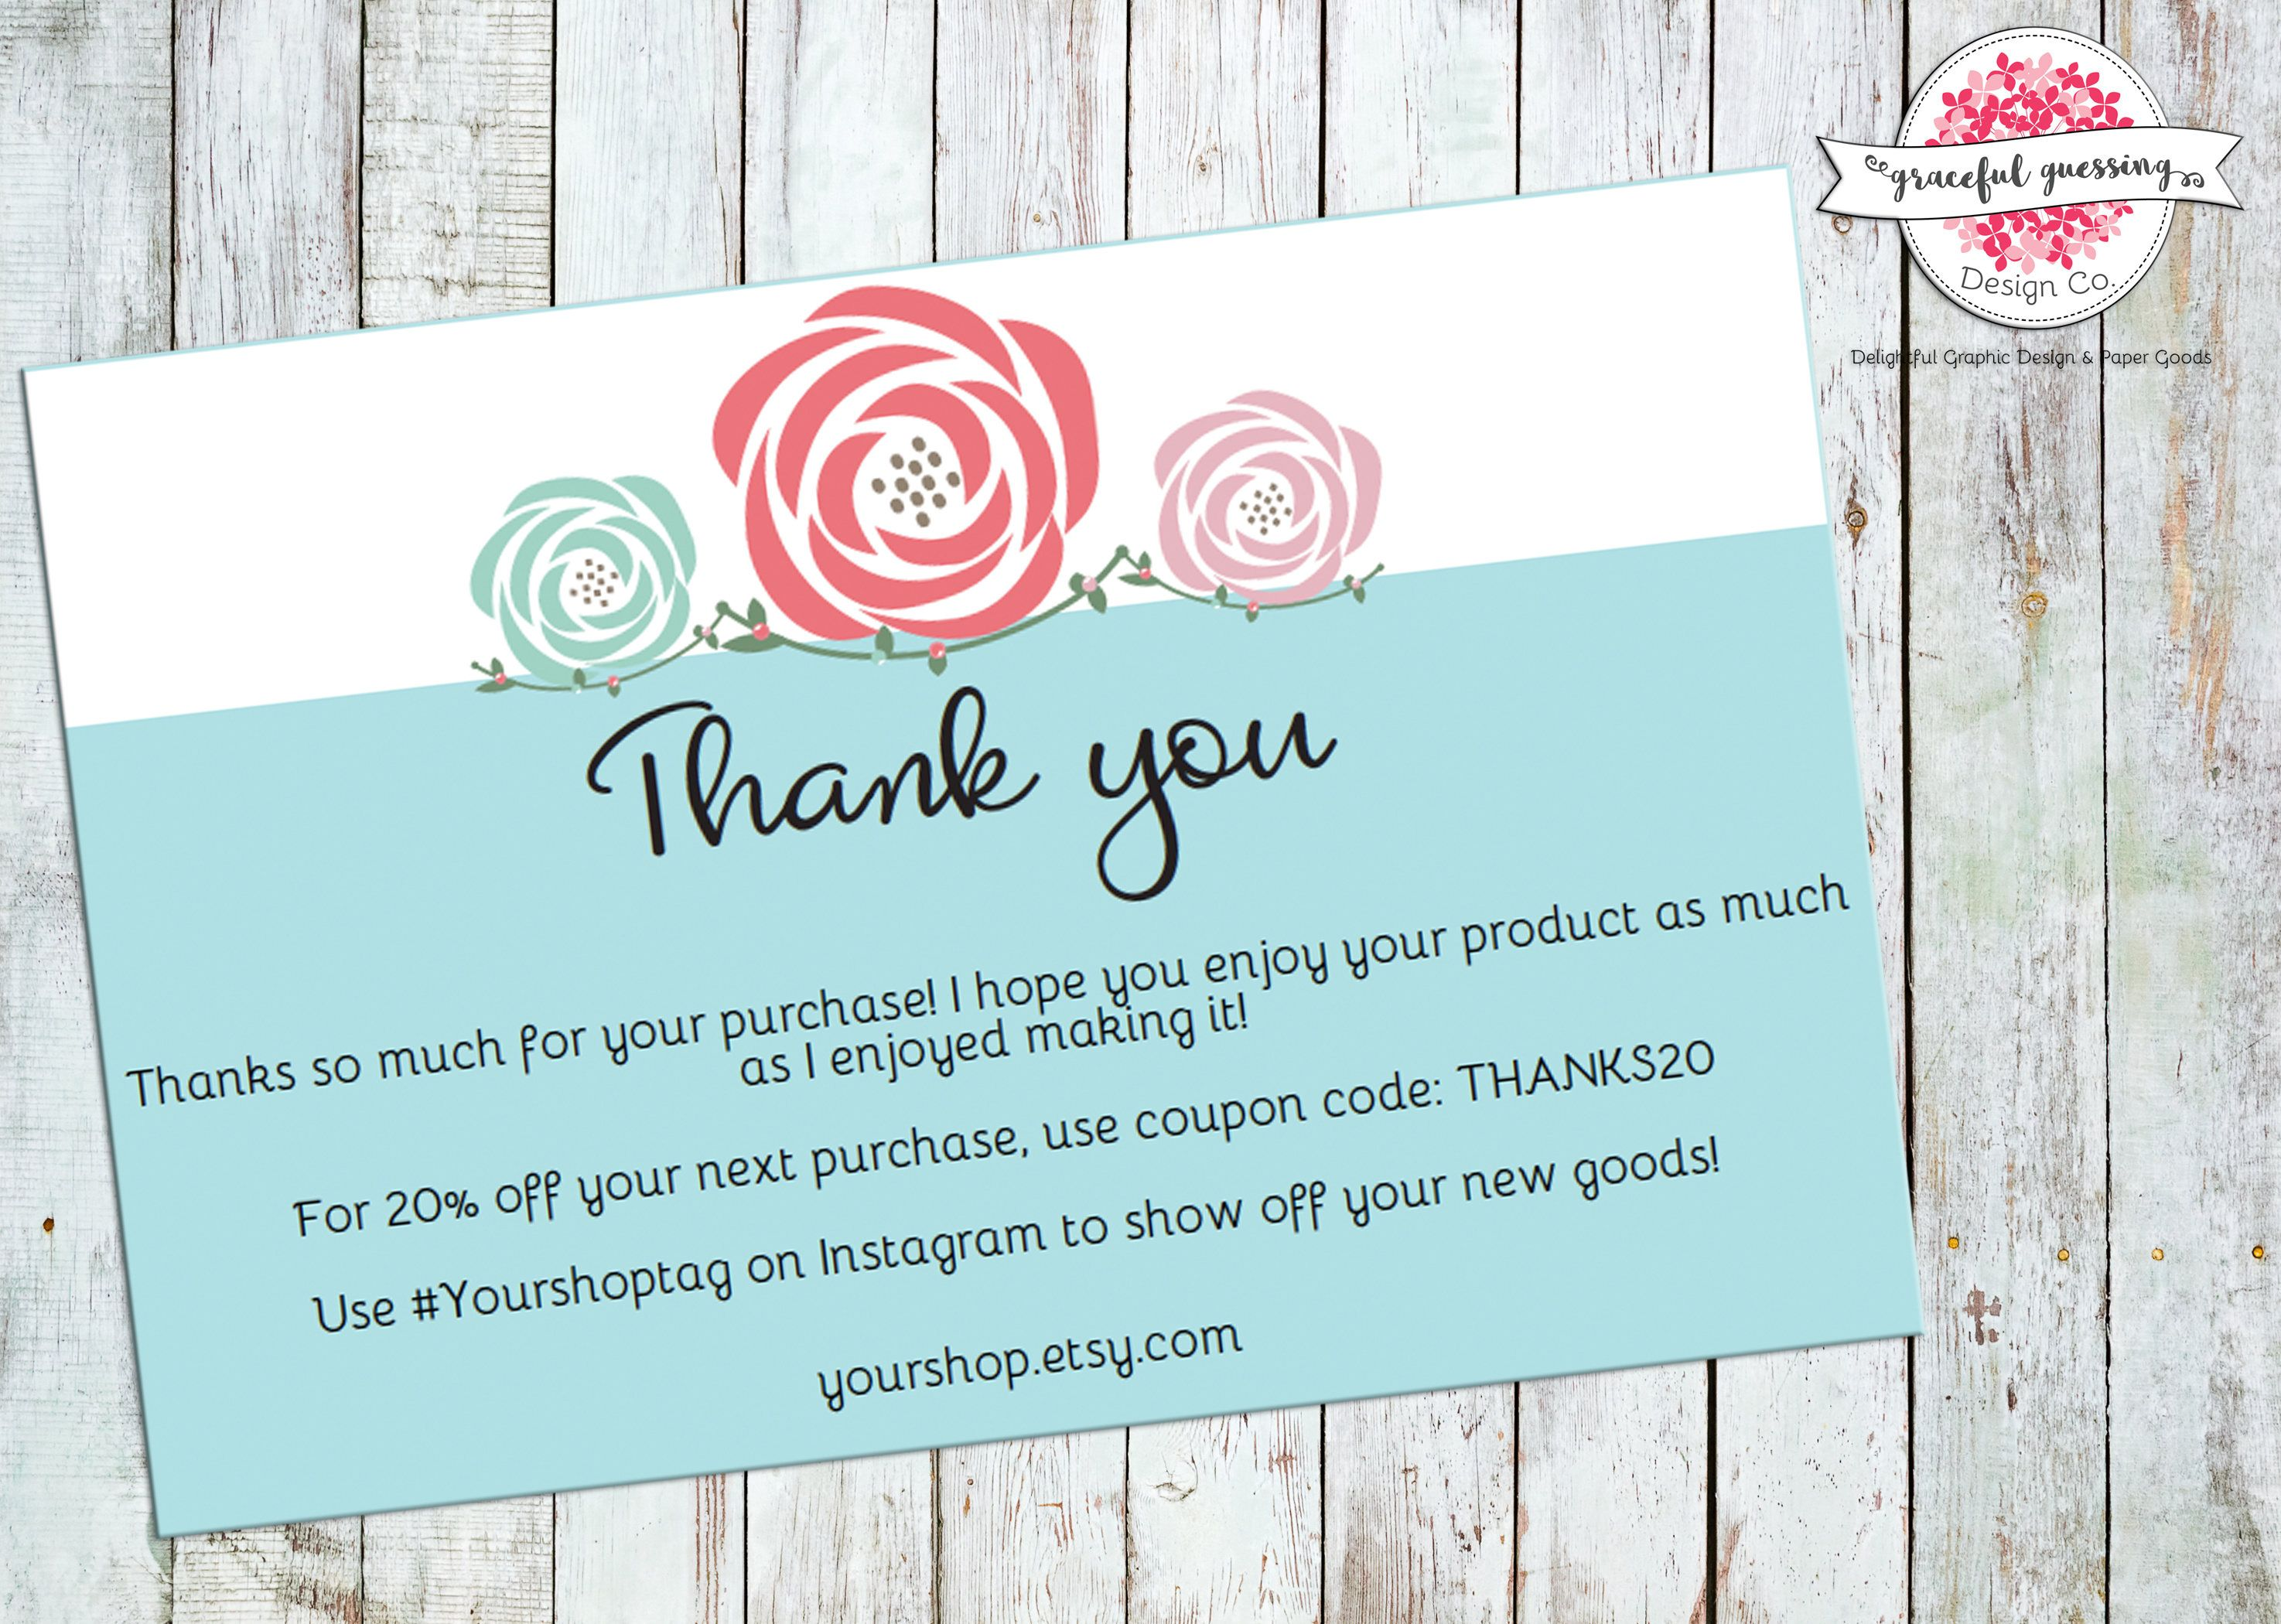 Order Thank You Cards Printable Etsy Shop Cards Package Insert Cards Small Business Thank You Cards Hand Lettering Cards Thanks Card Thank You Cards